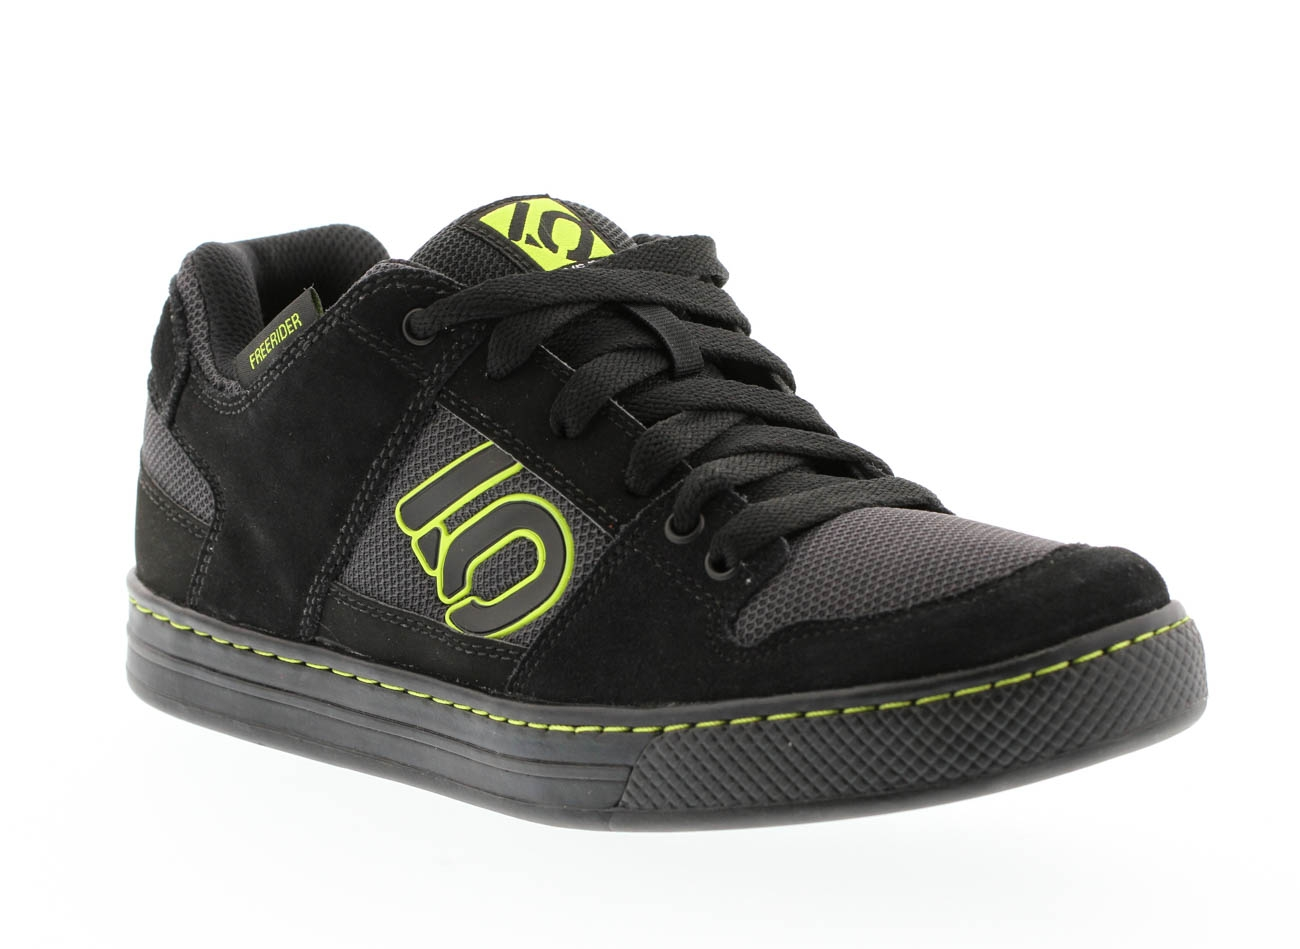 Chaussures Five Ten FREERIDER Noir/Vert Lime - UK-4.0 (37.0)